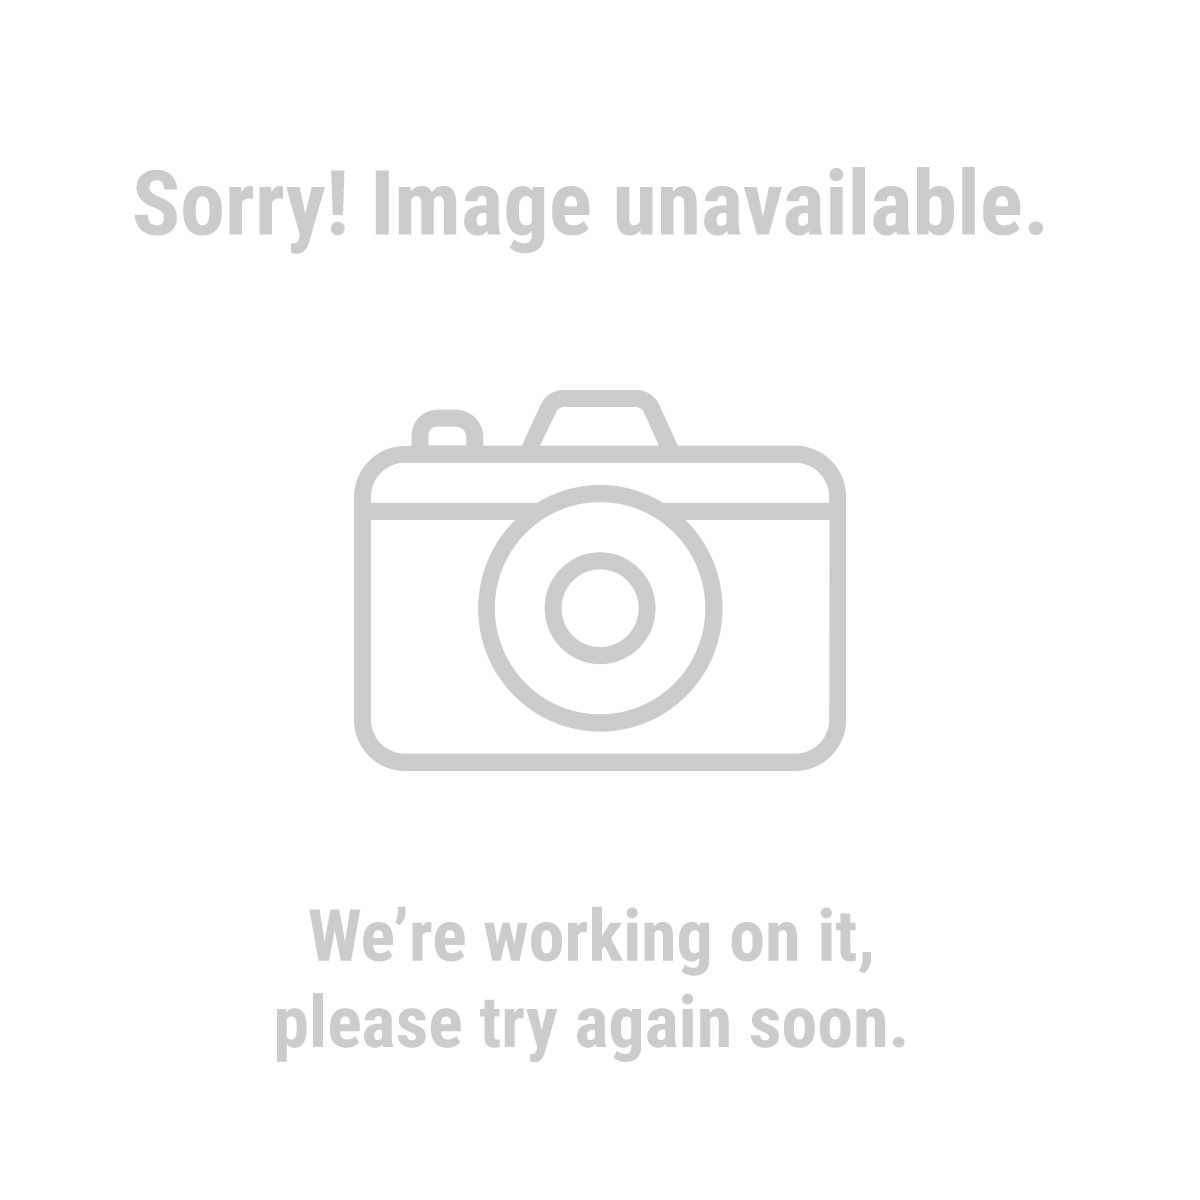 AUTO AIR CONDITIONING PUMP COMPARE  S REVIEWS AND   AT. #781A1D